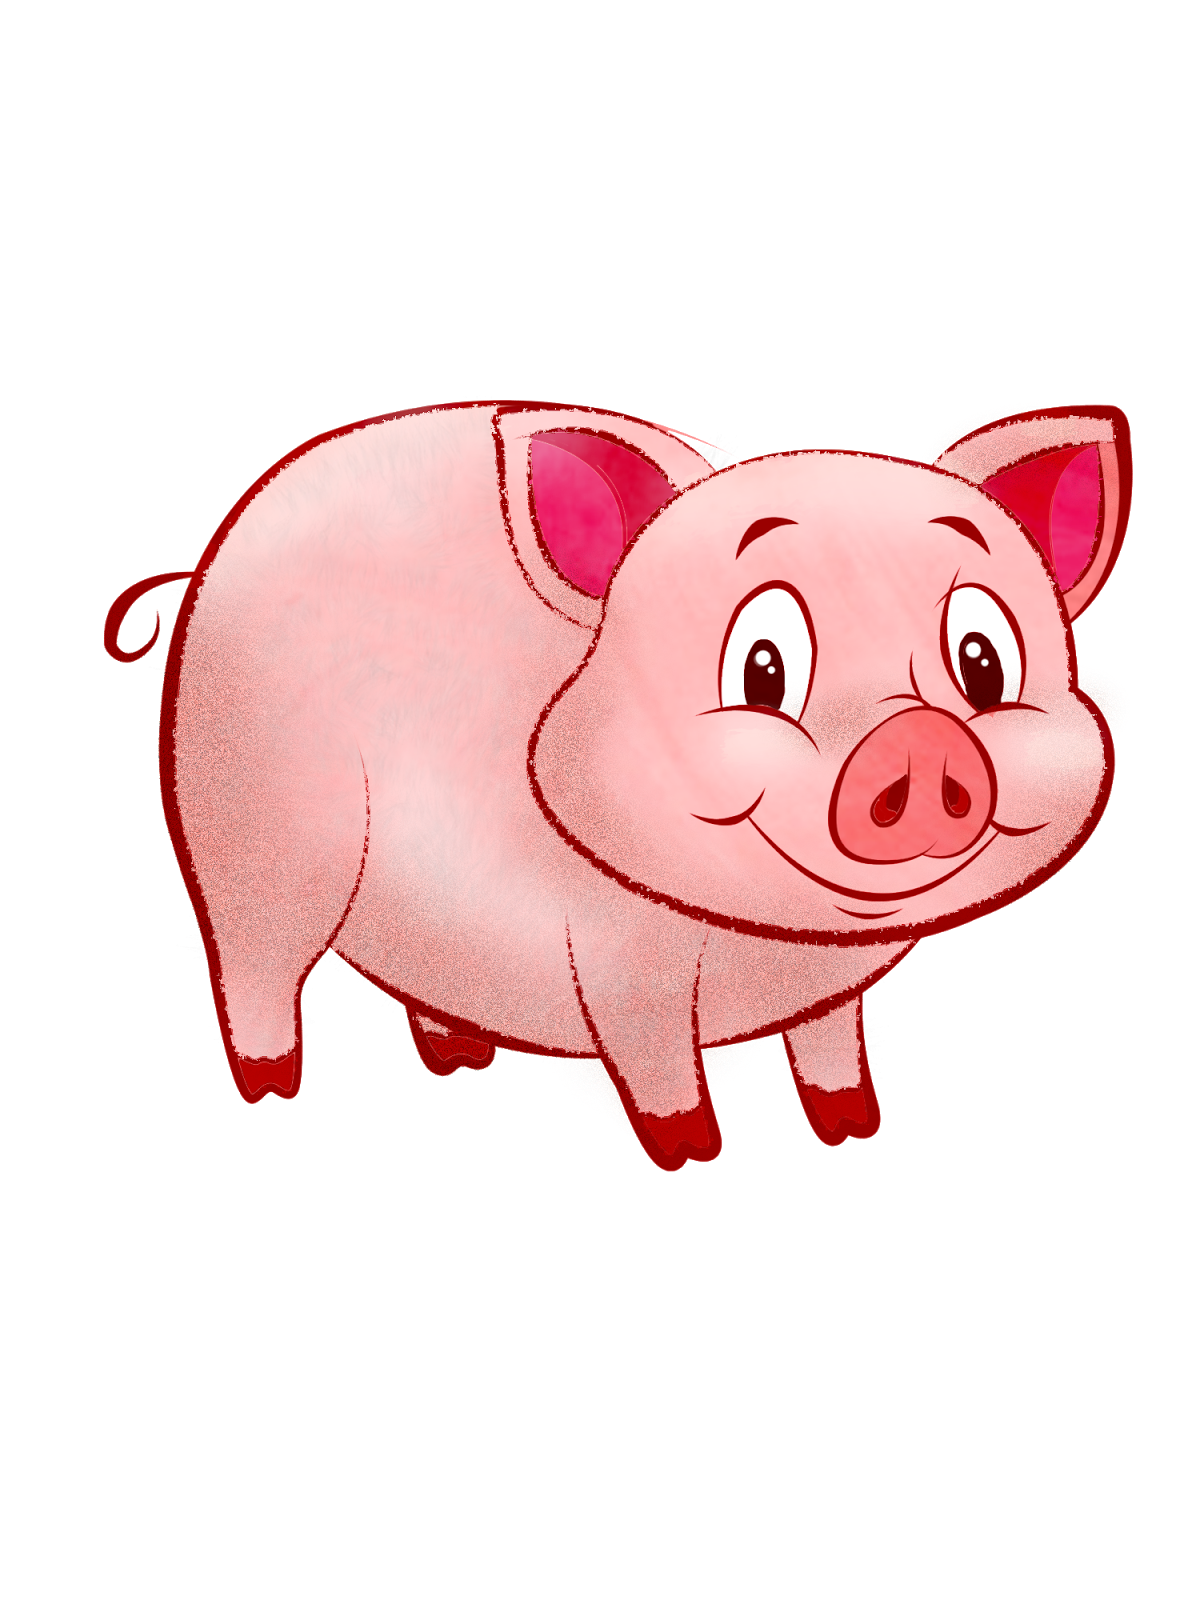 baboy clipart   philippine clipart free free november clip art themes free november clip art border